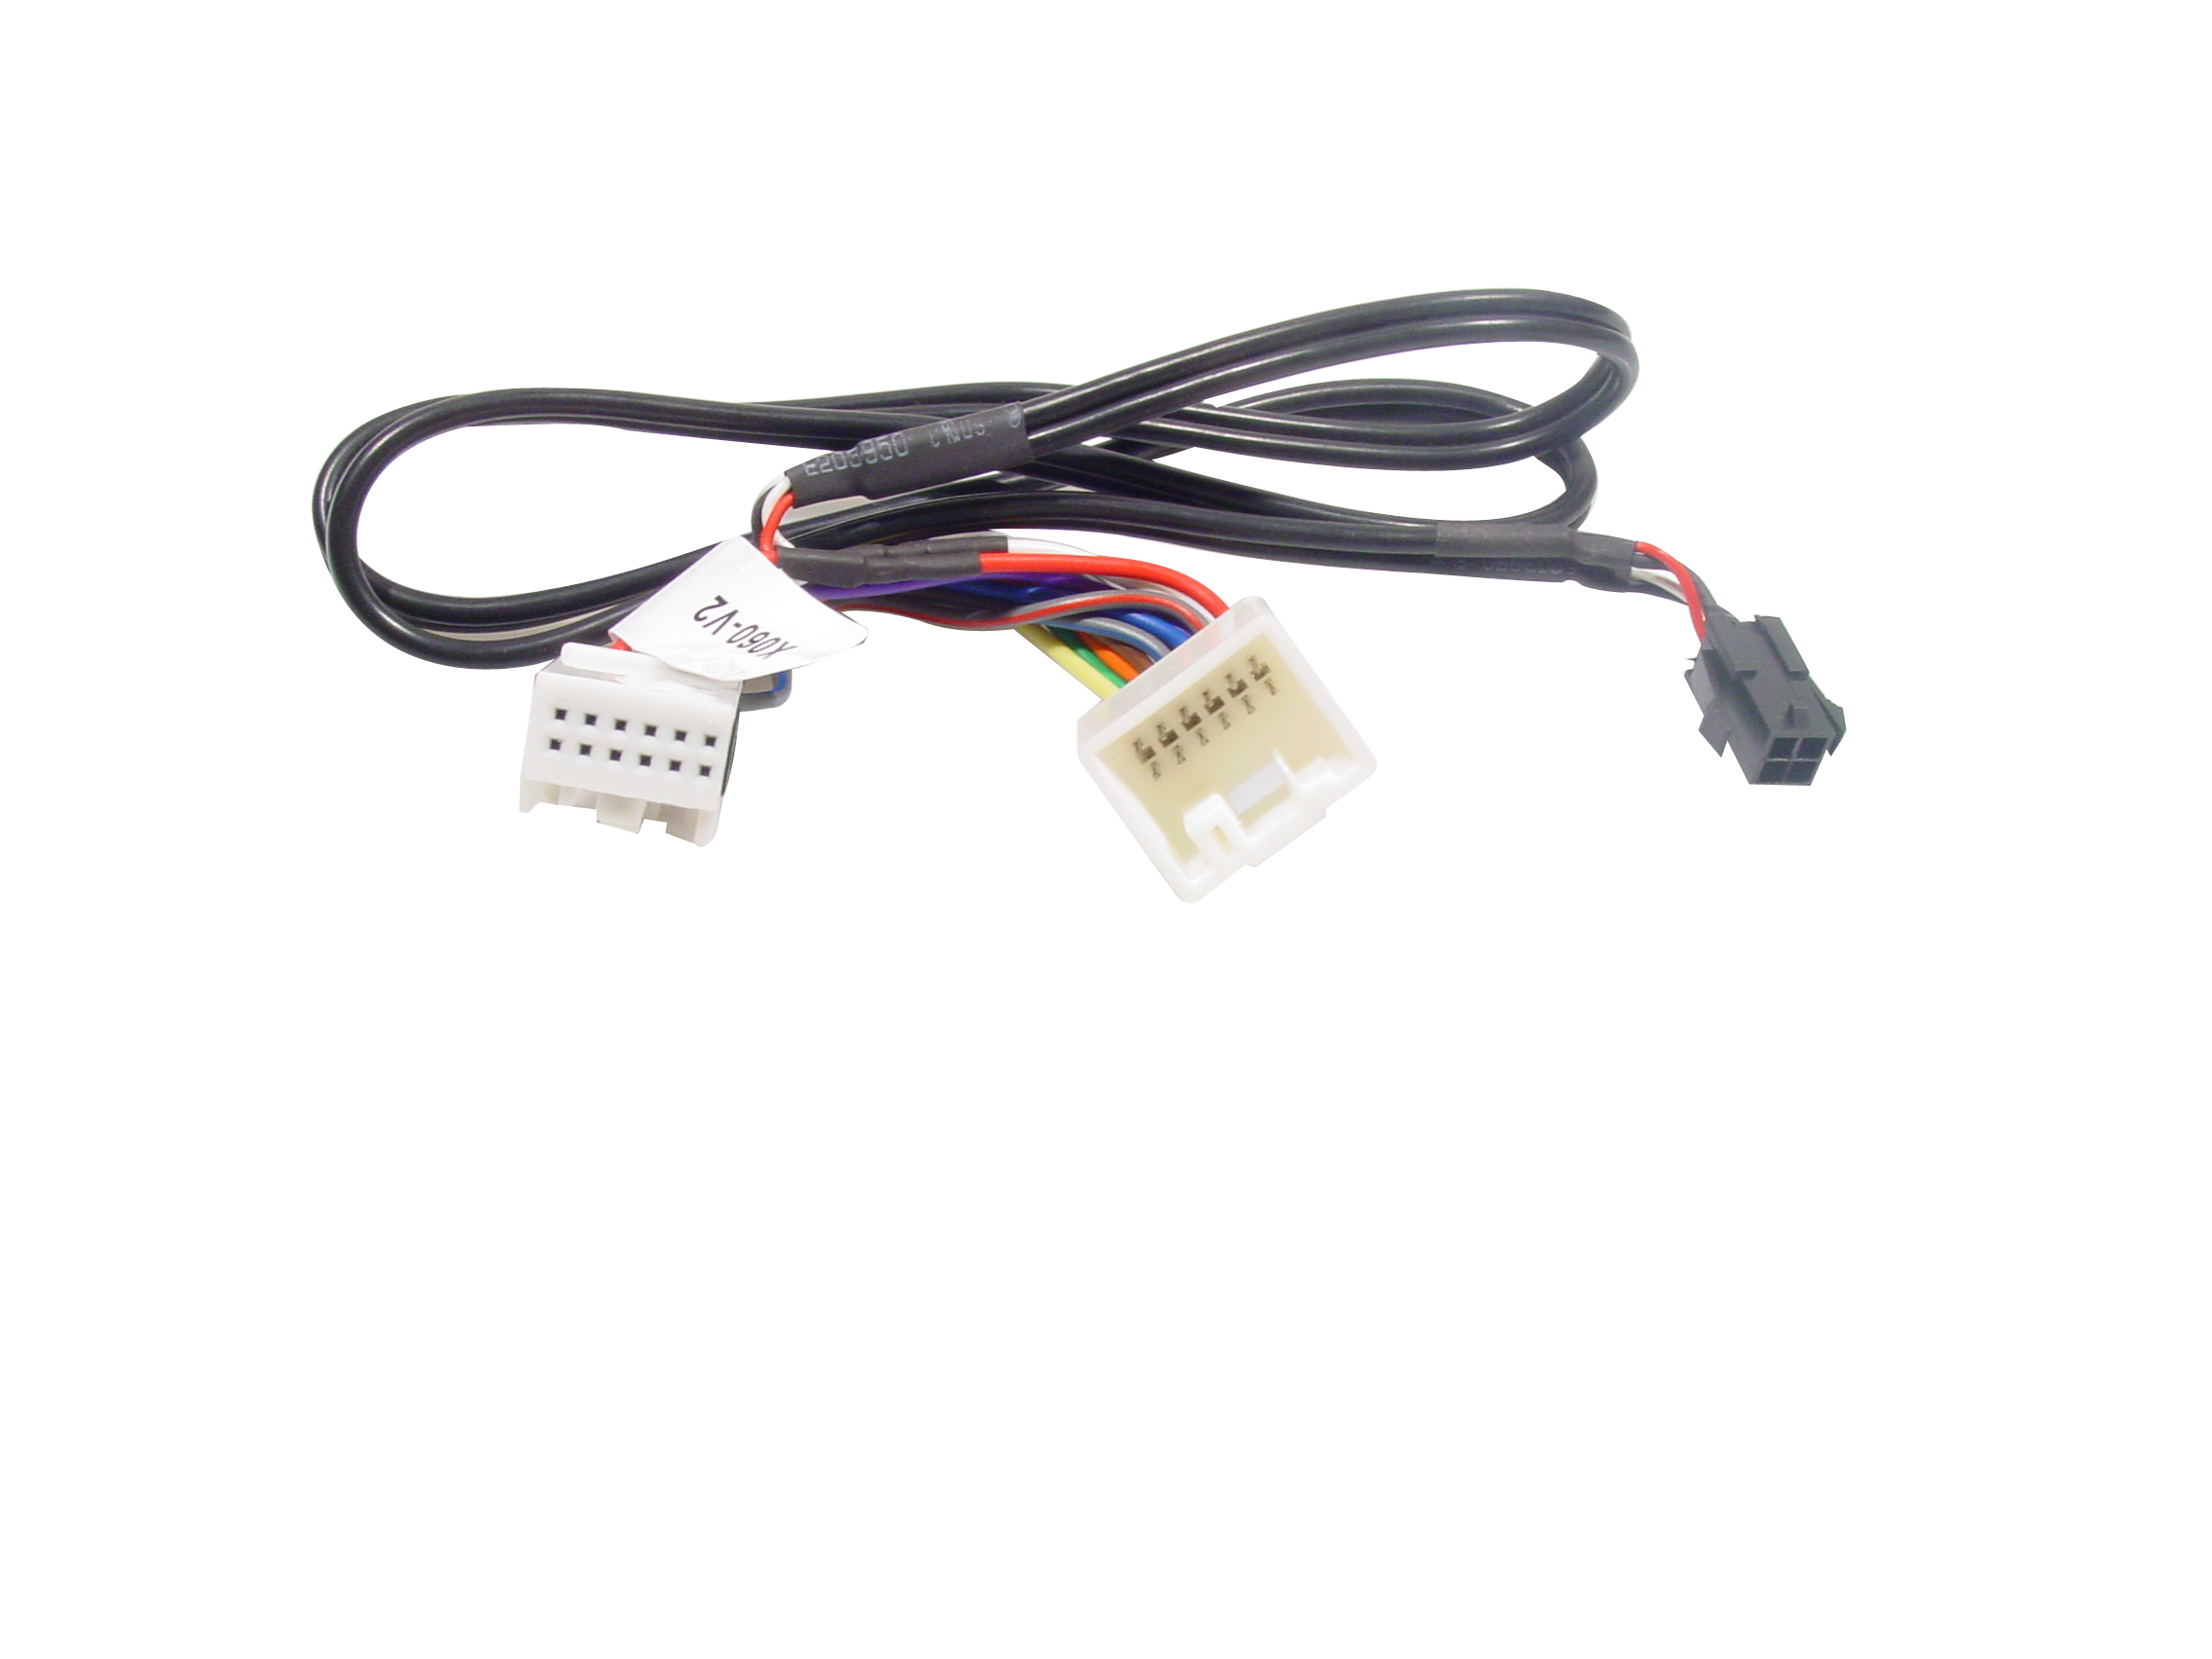 Kram Aux Cable See Compatibility Asp X060 Wiring